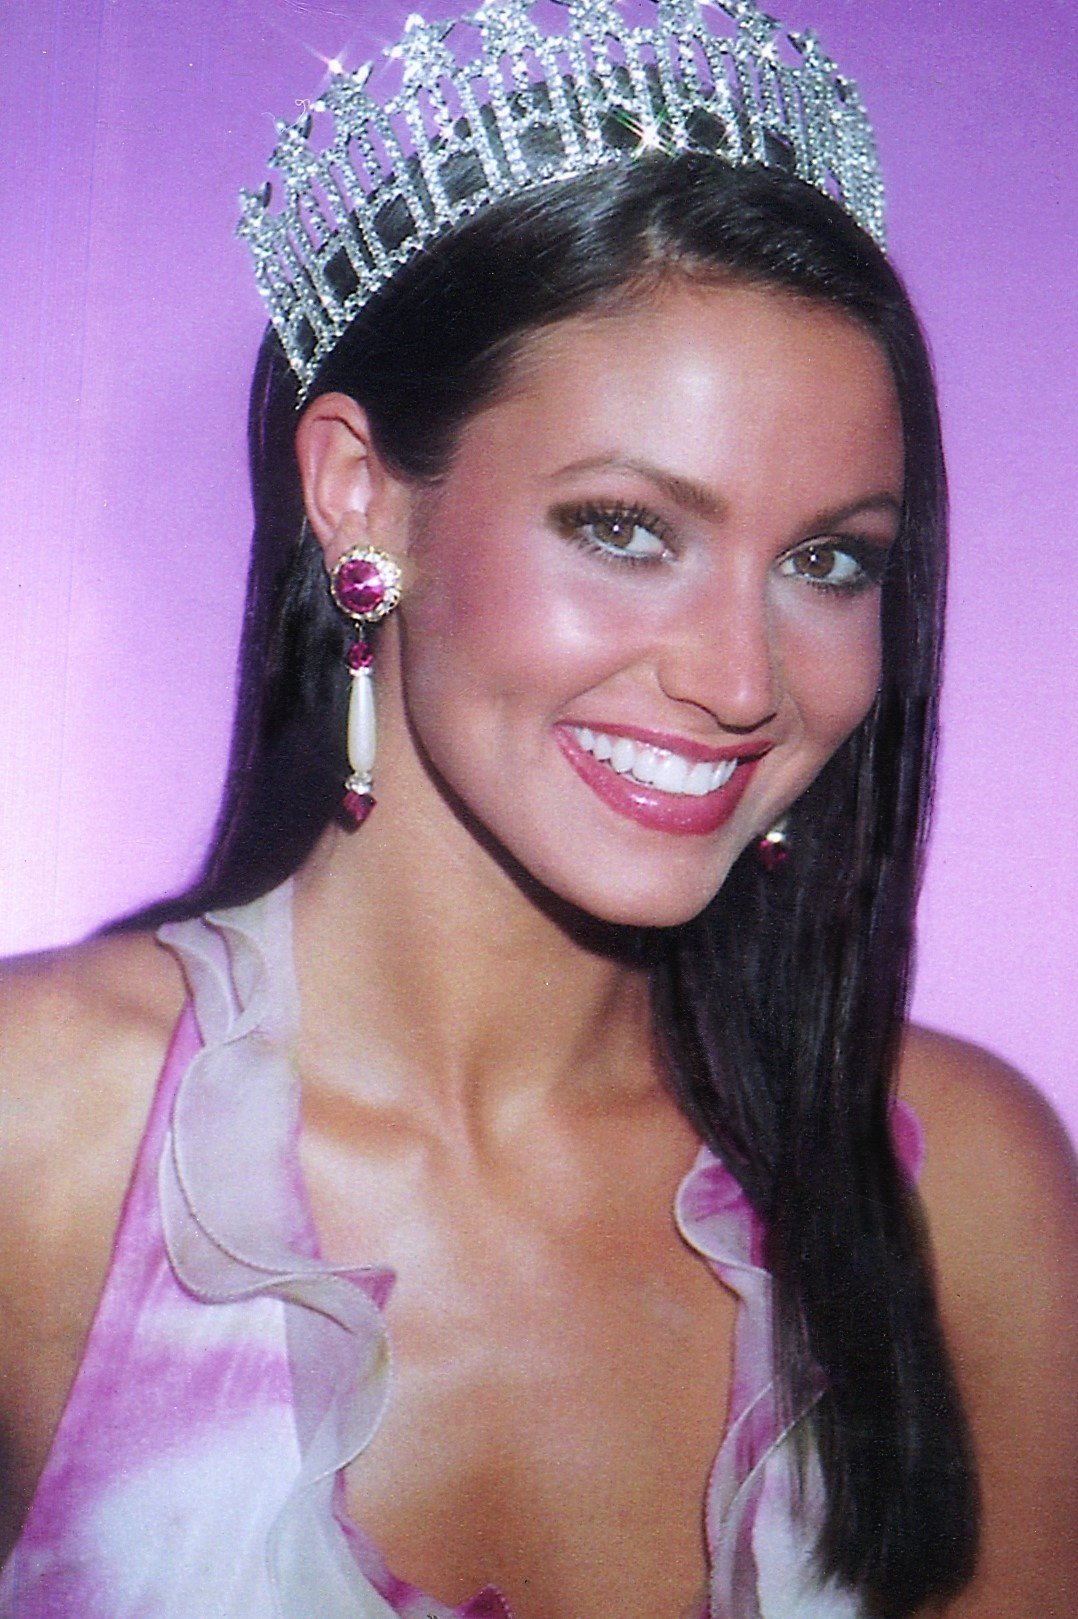 MISS SC-USA -  AMANDA PENNEKAMP   She was also first runner up at MISS USA.